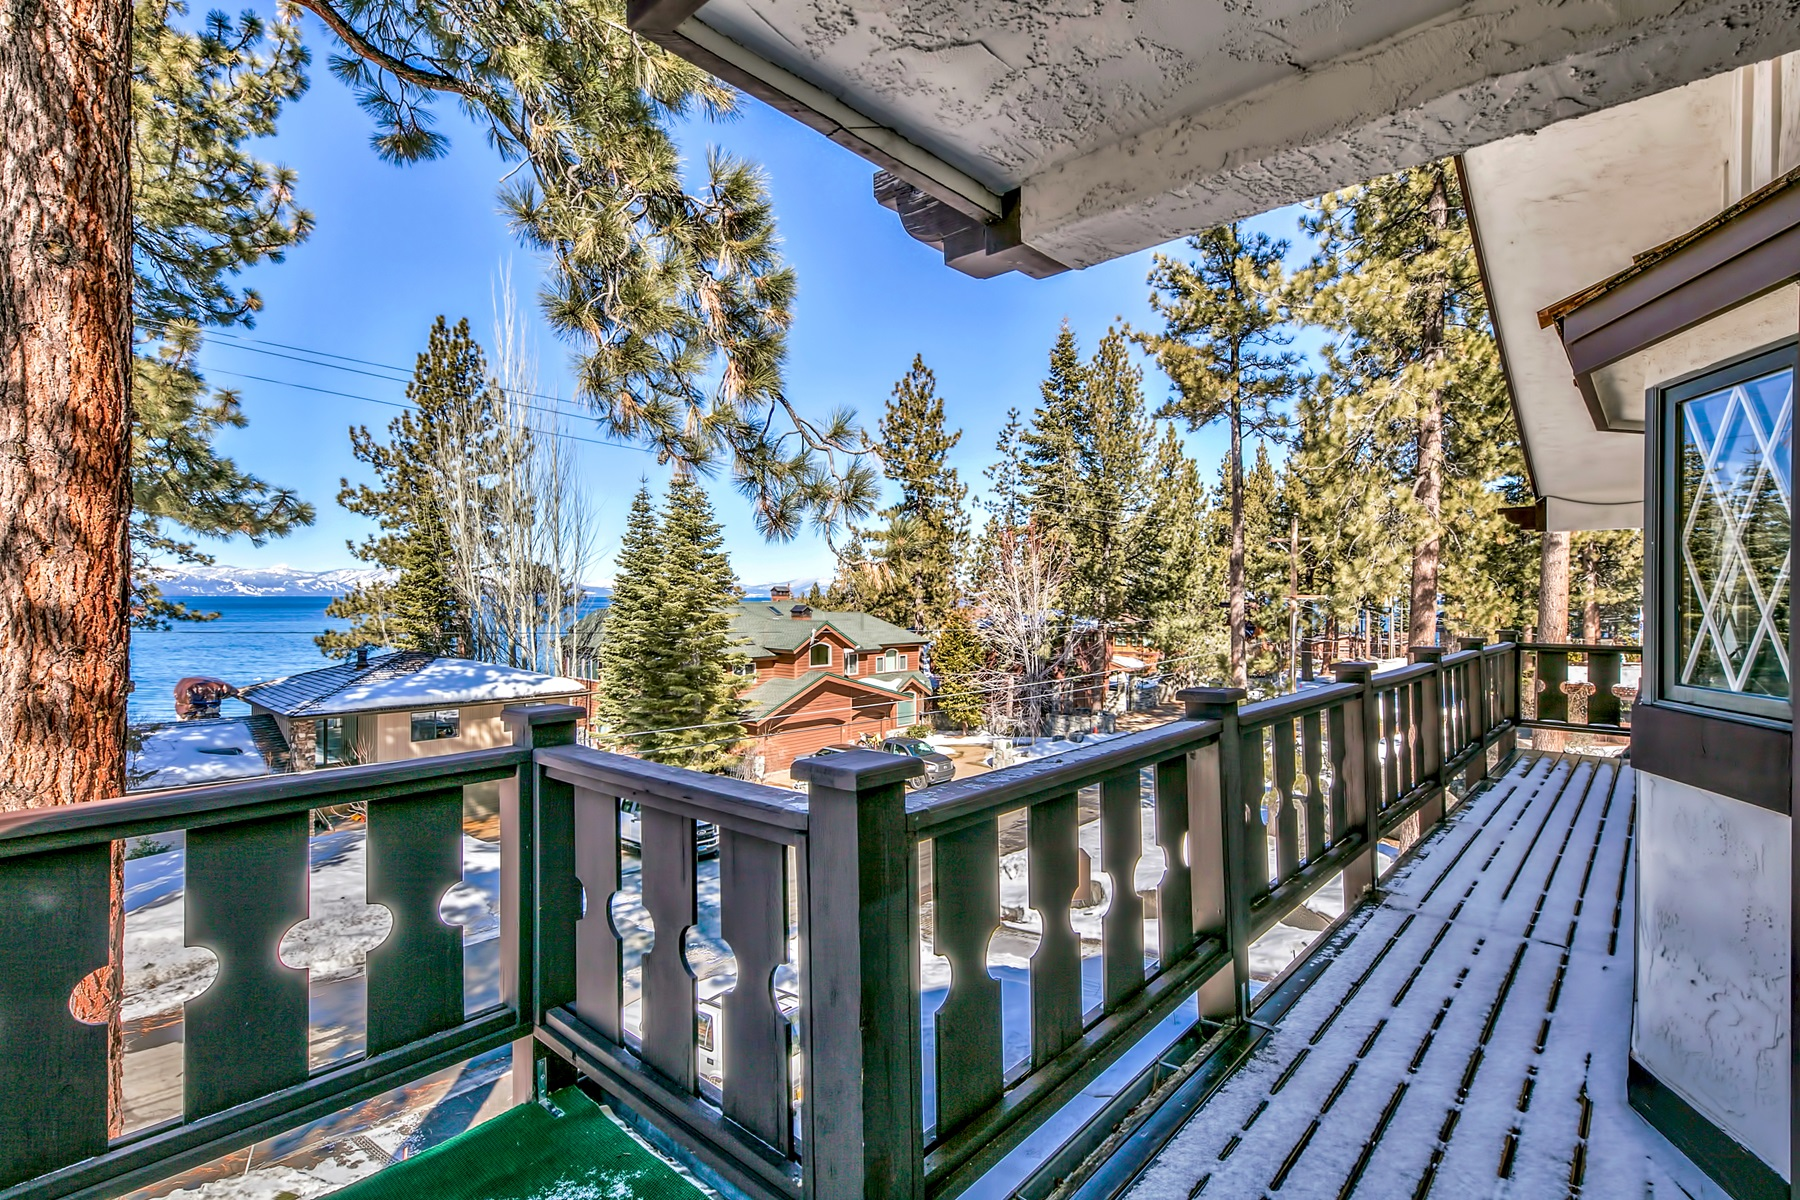 Additional photo for property listing at 1003 Skyland Drive, Zephyr Cove, NV 89448 1003 Skyland Drive Zephyr Cove, Nevada 89448 United States